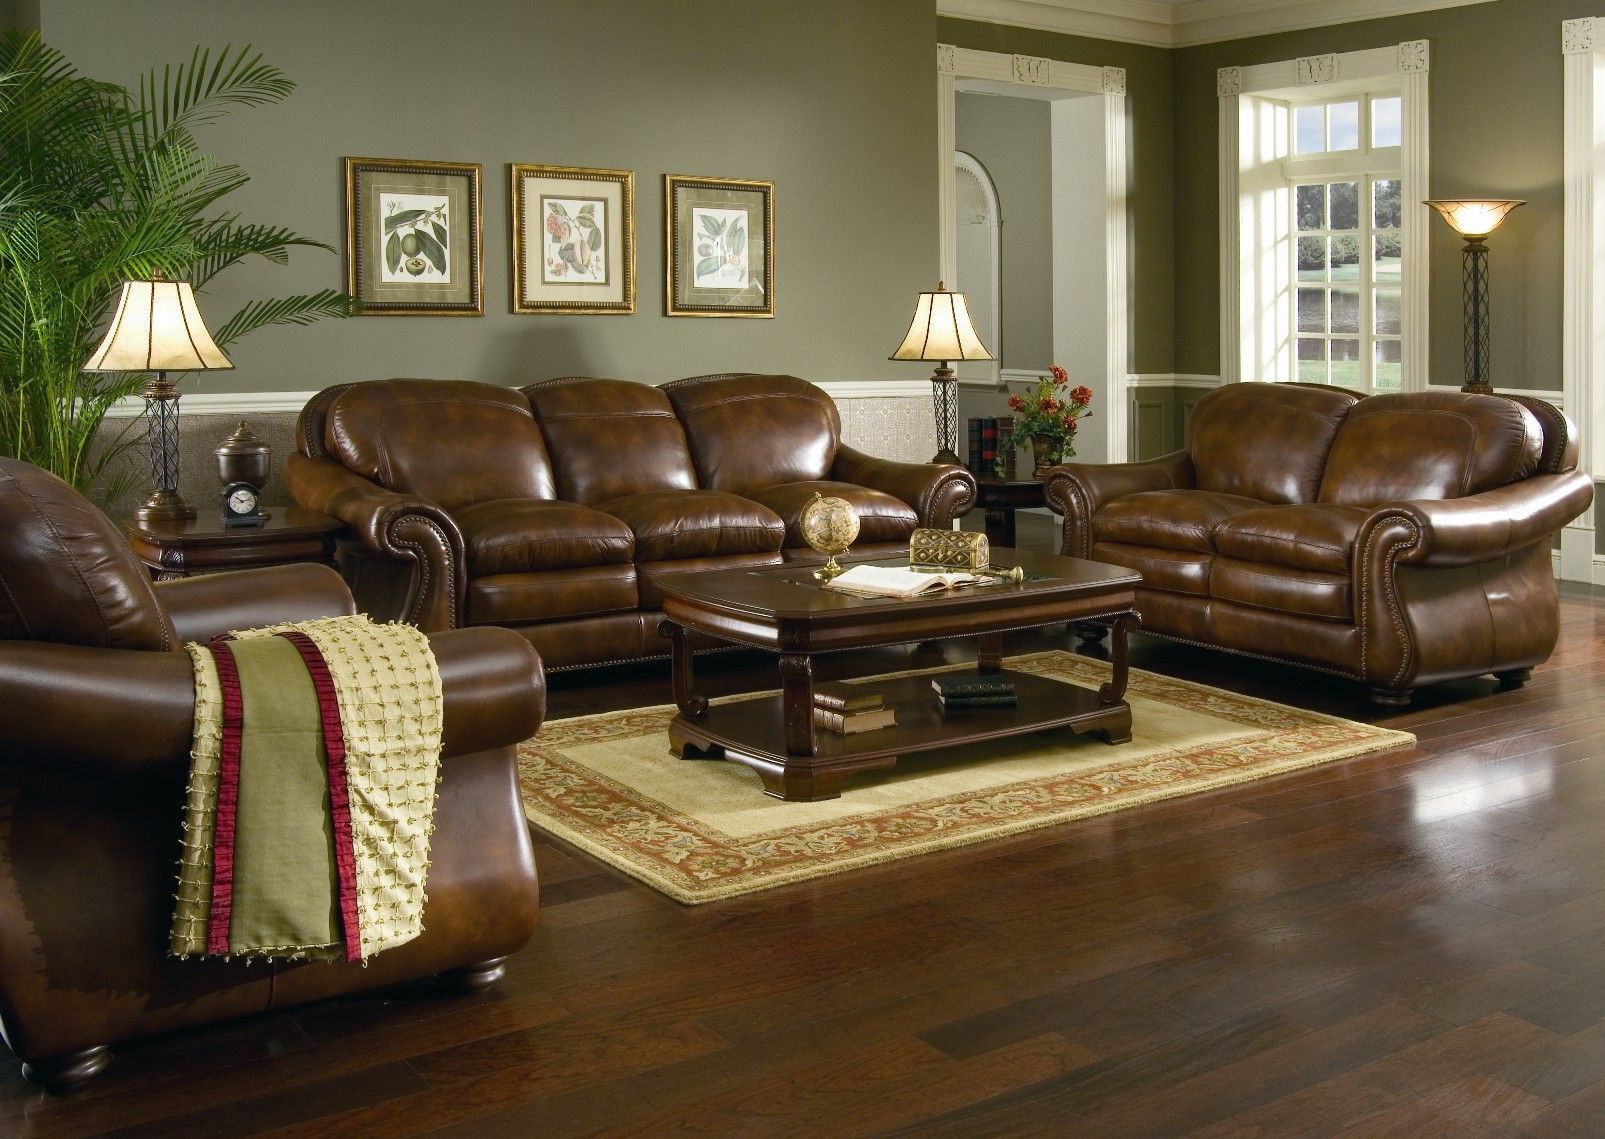 Brown leather living room furniture - Leather Living Room Furniture In Living Room With Brown Leather Sofa Home Design And Decorating Ideas